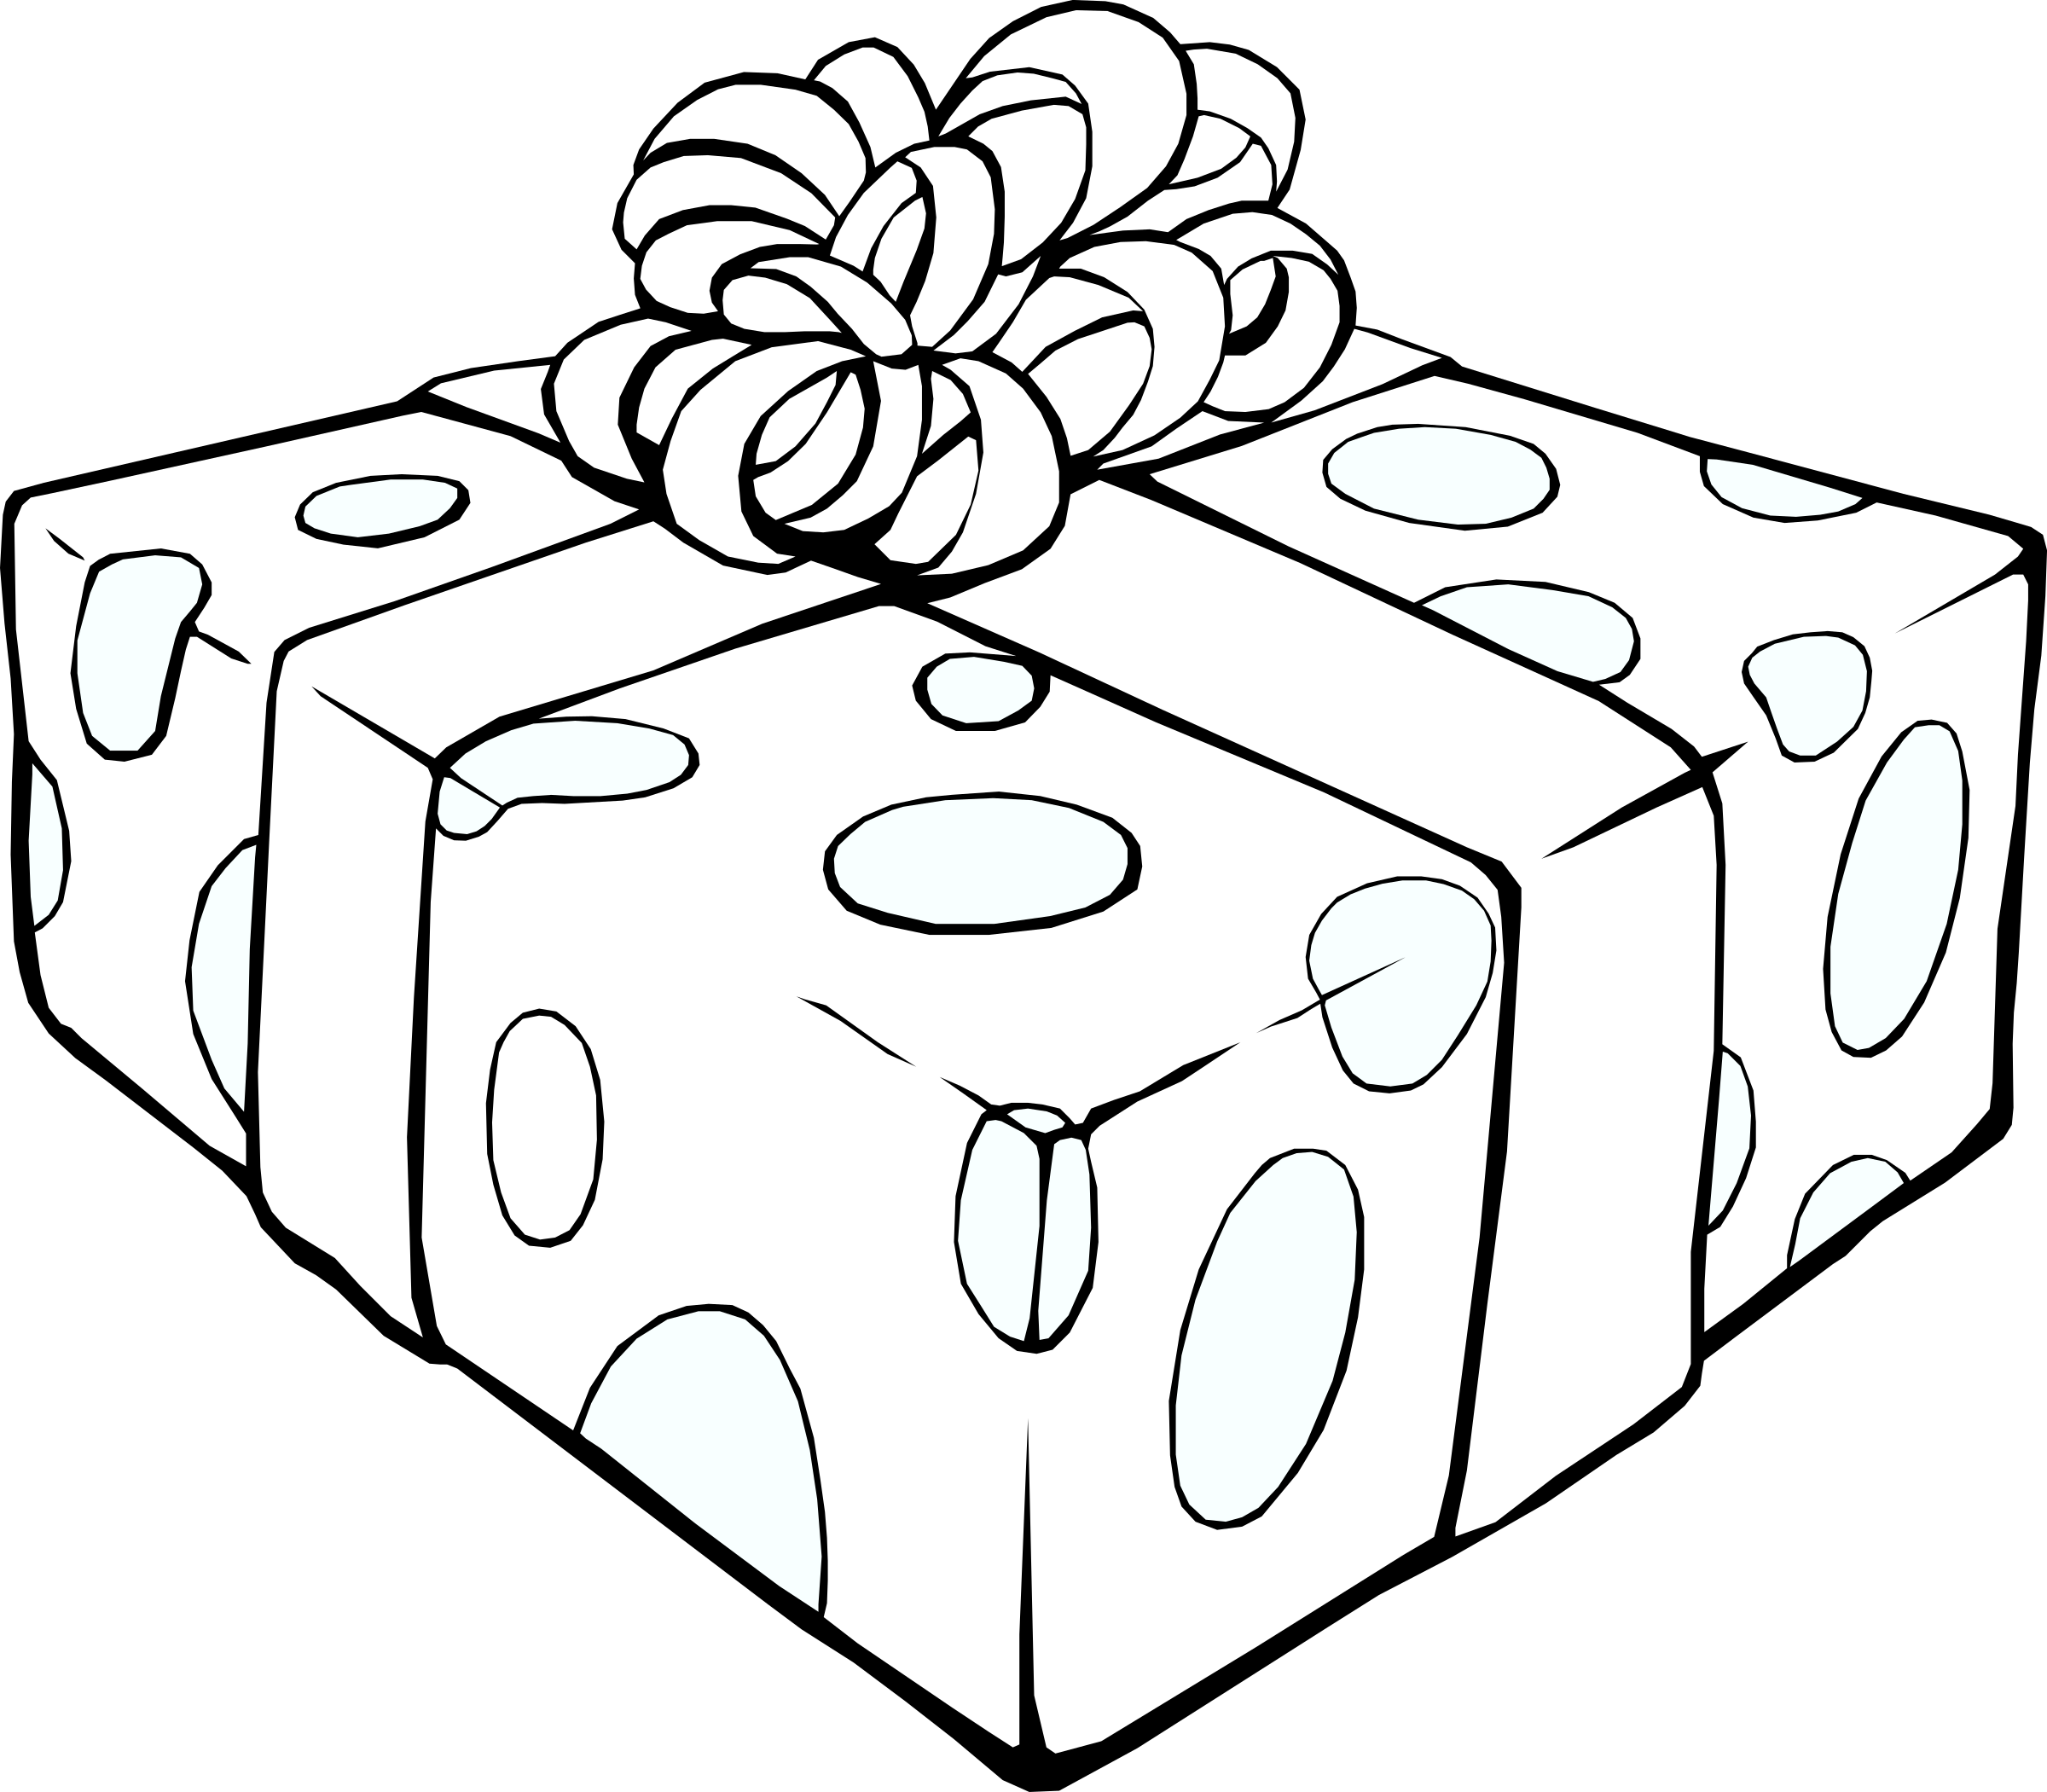 Gift big image png. Gifts clipart line art